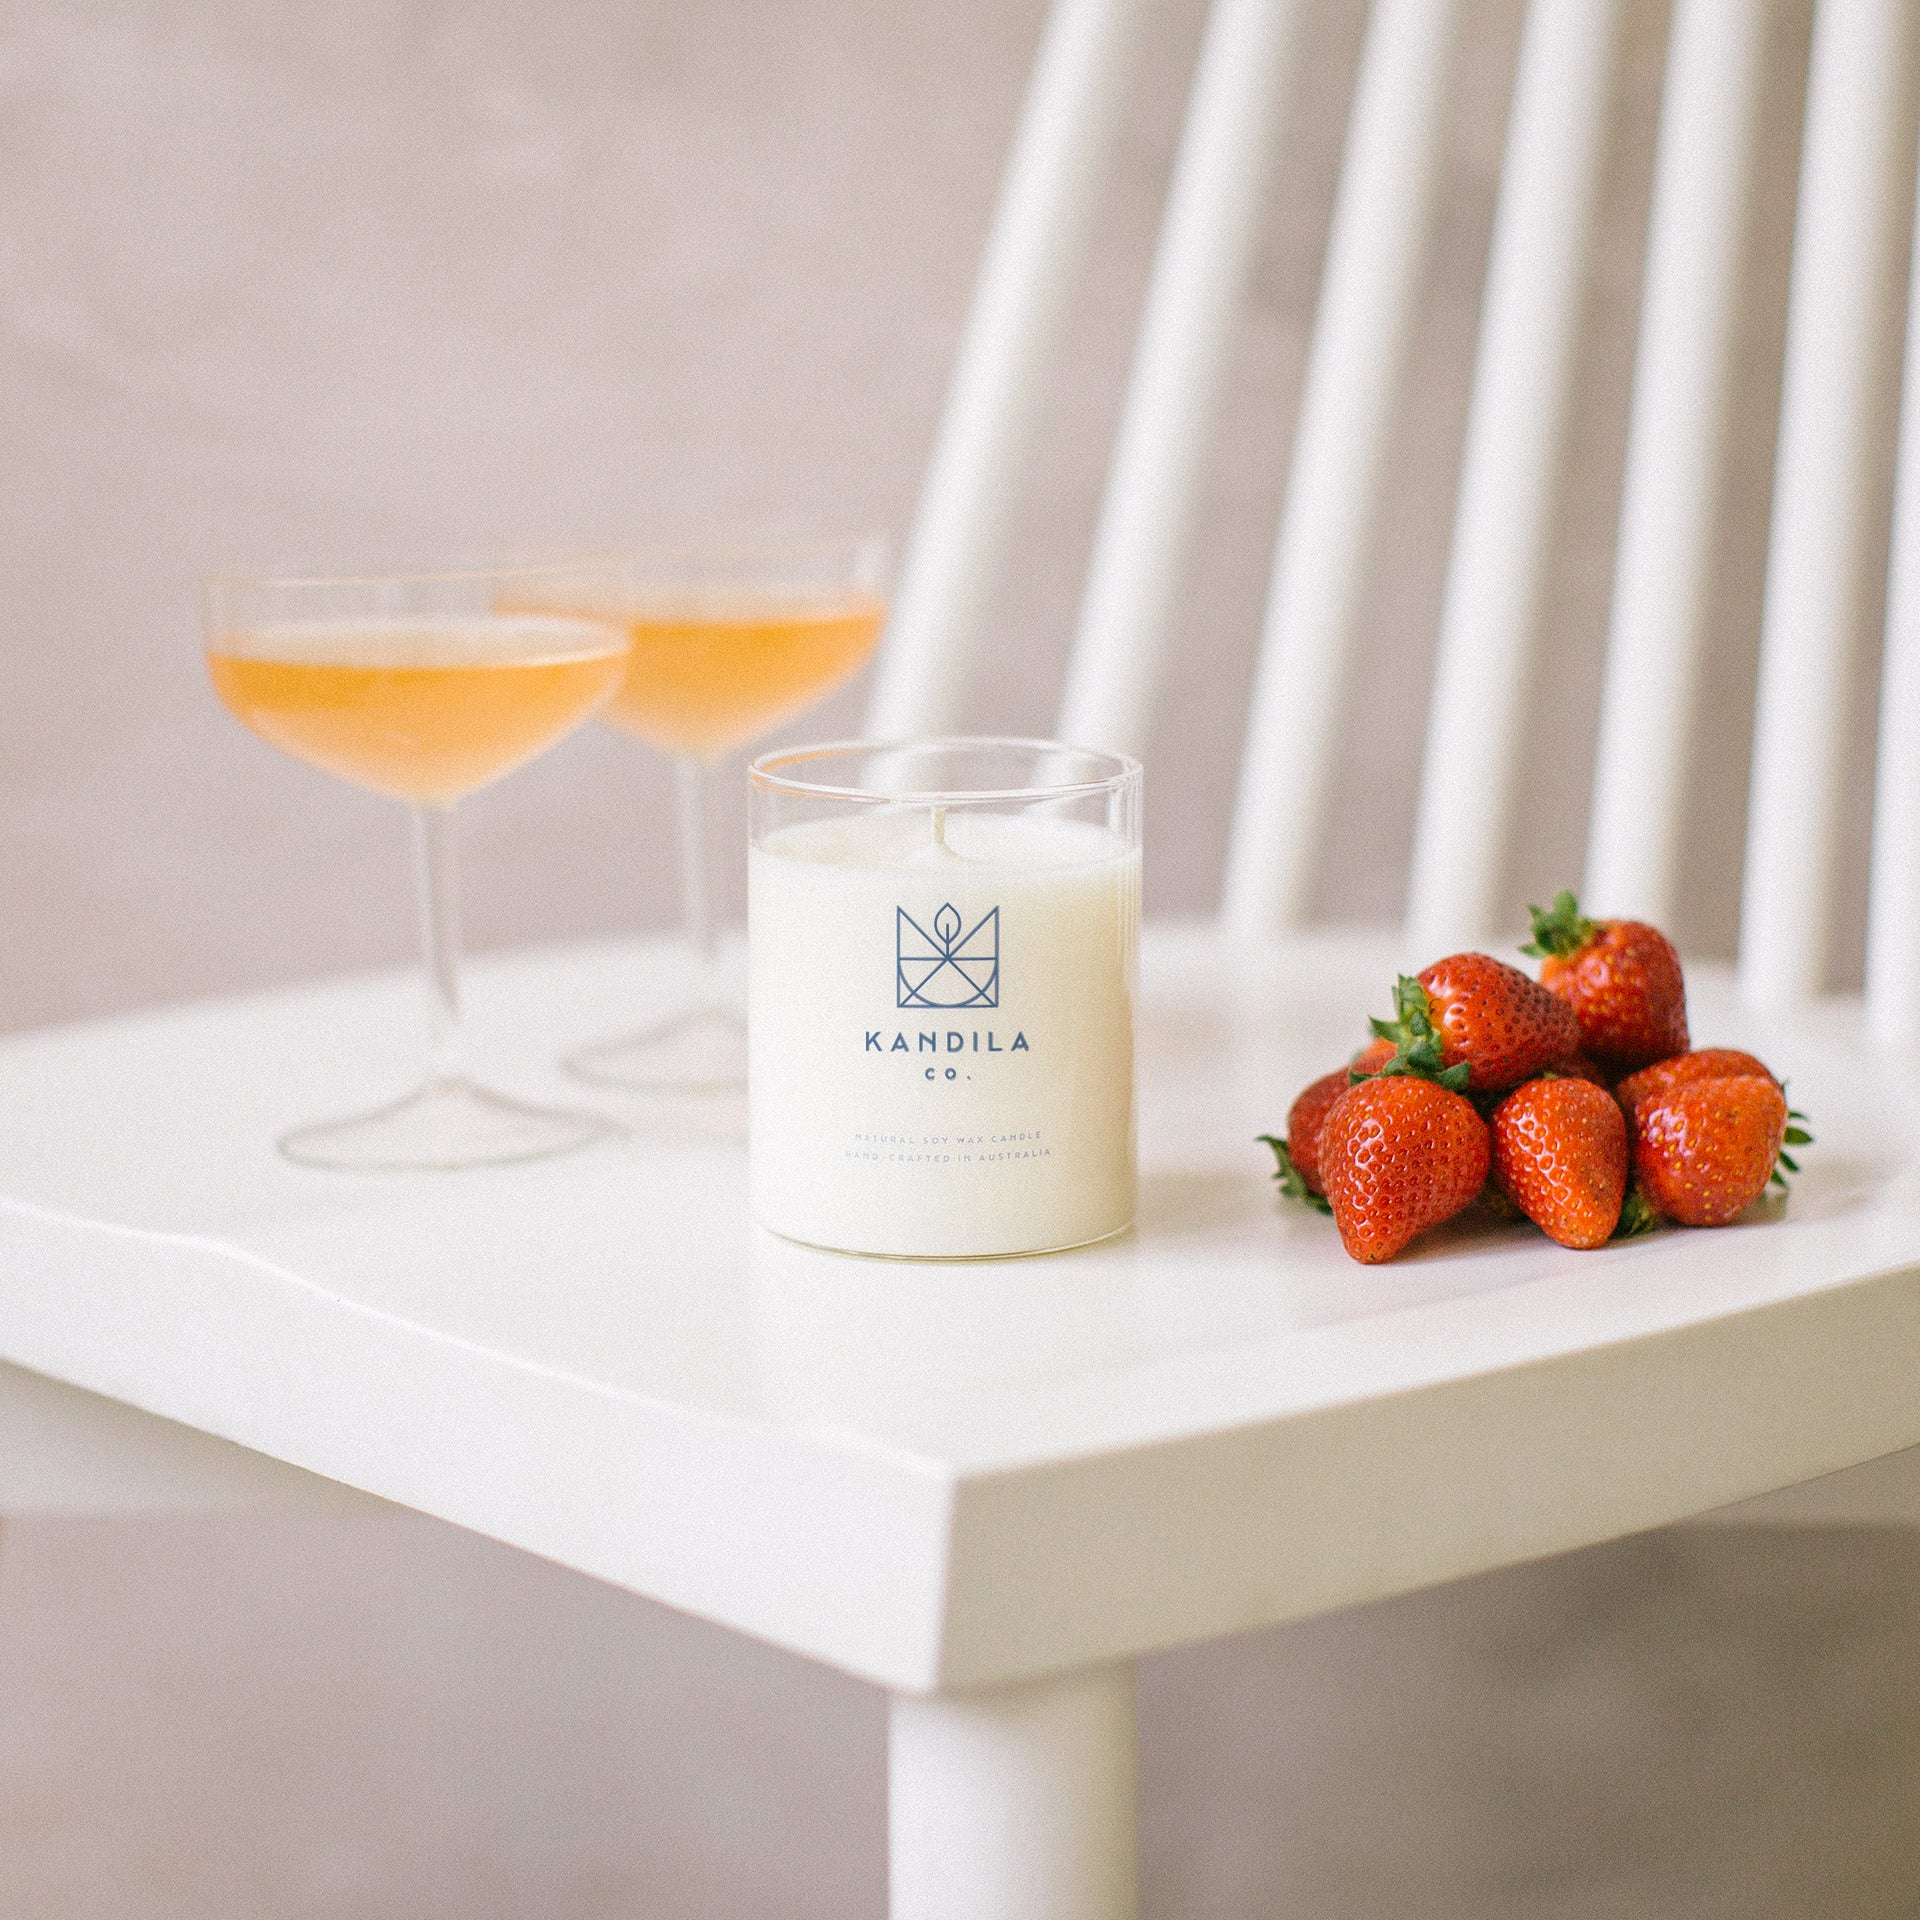 Kandila Company Strawberry and Champagne Natural Vegan Soy Candle Melbourne Australia